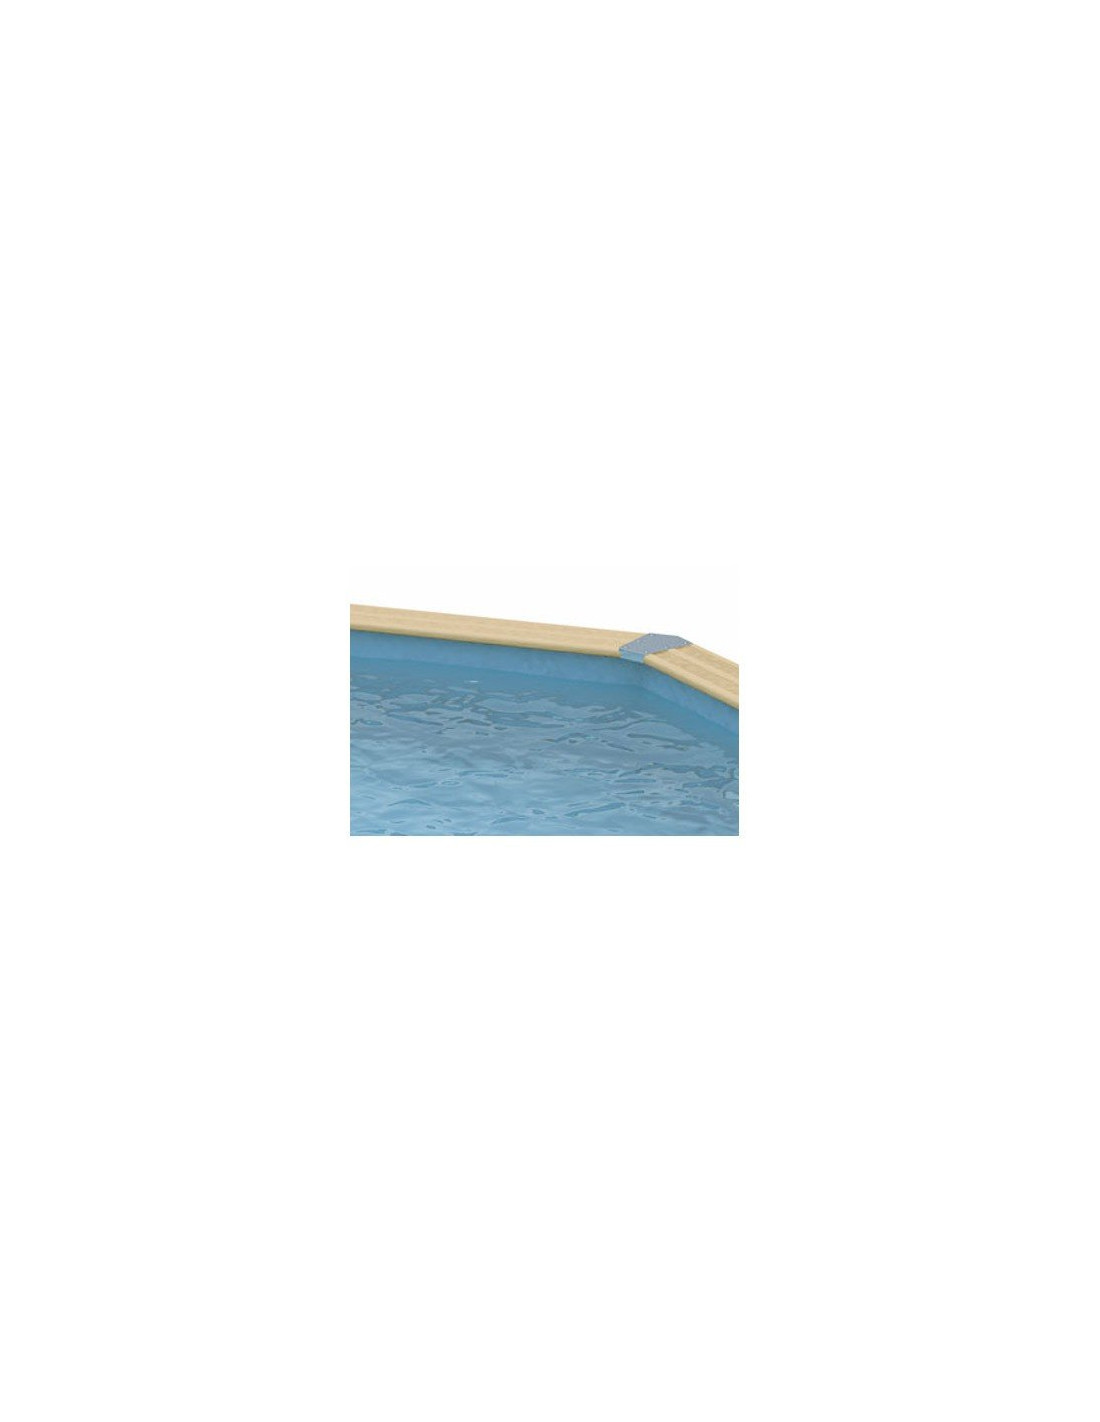 Liner piscine hors sol ovale ubbink ou nortland couleur for Liner piscine couleur sable